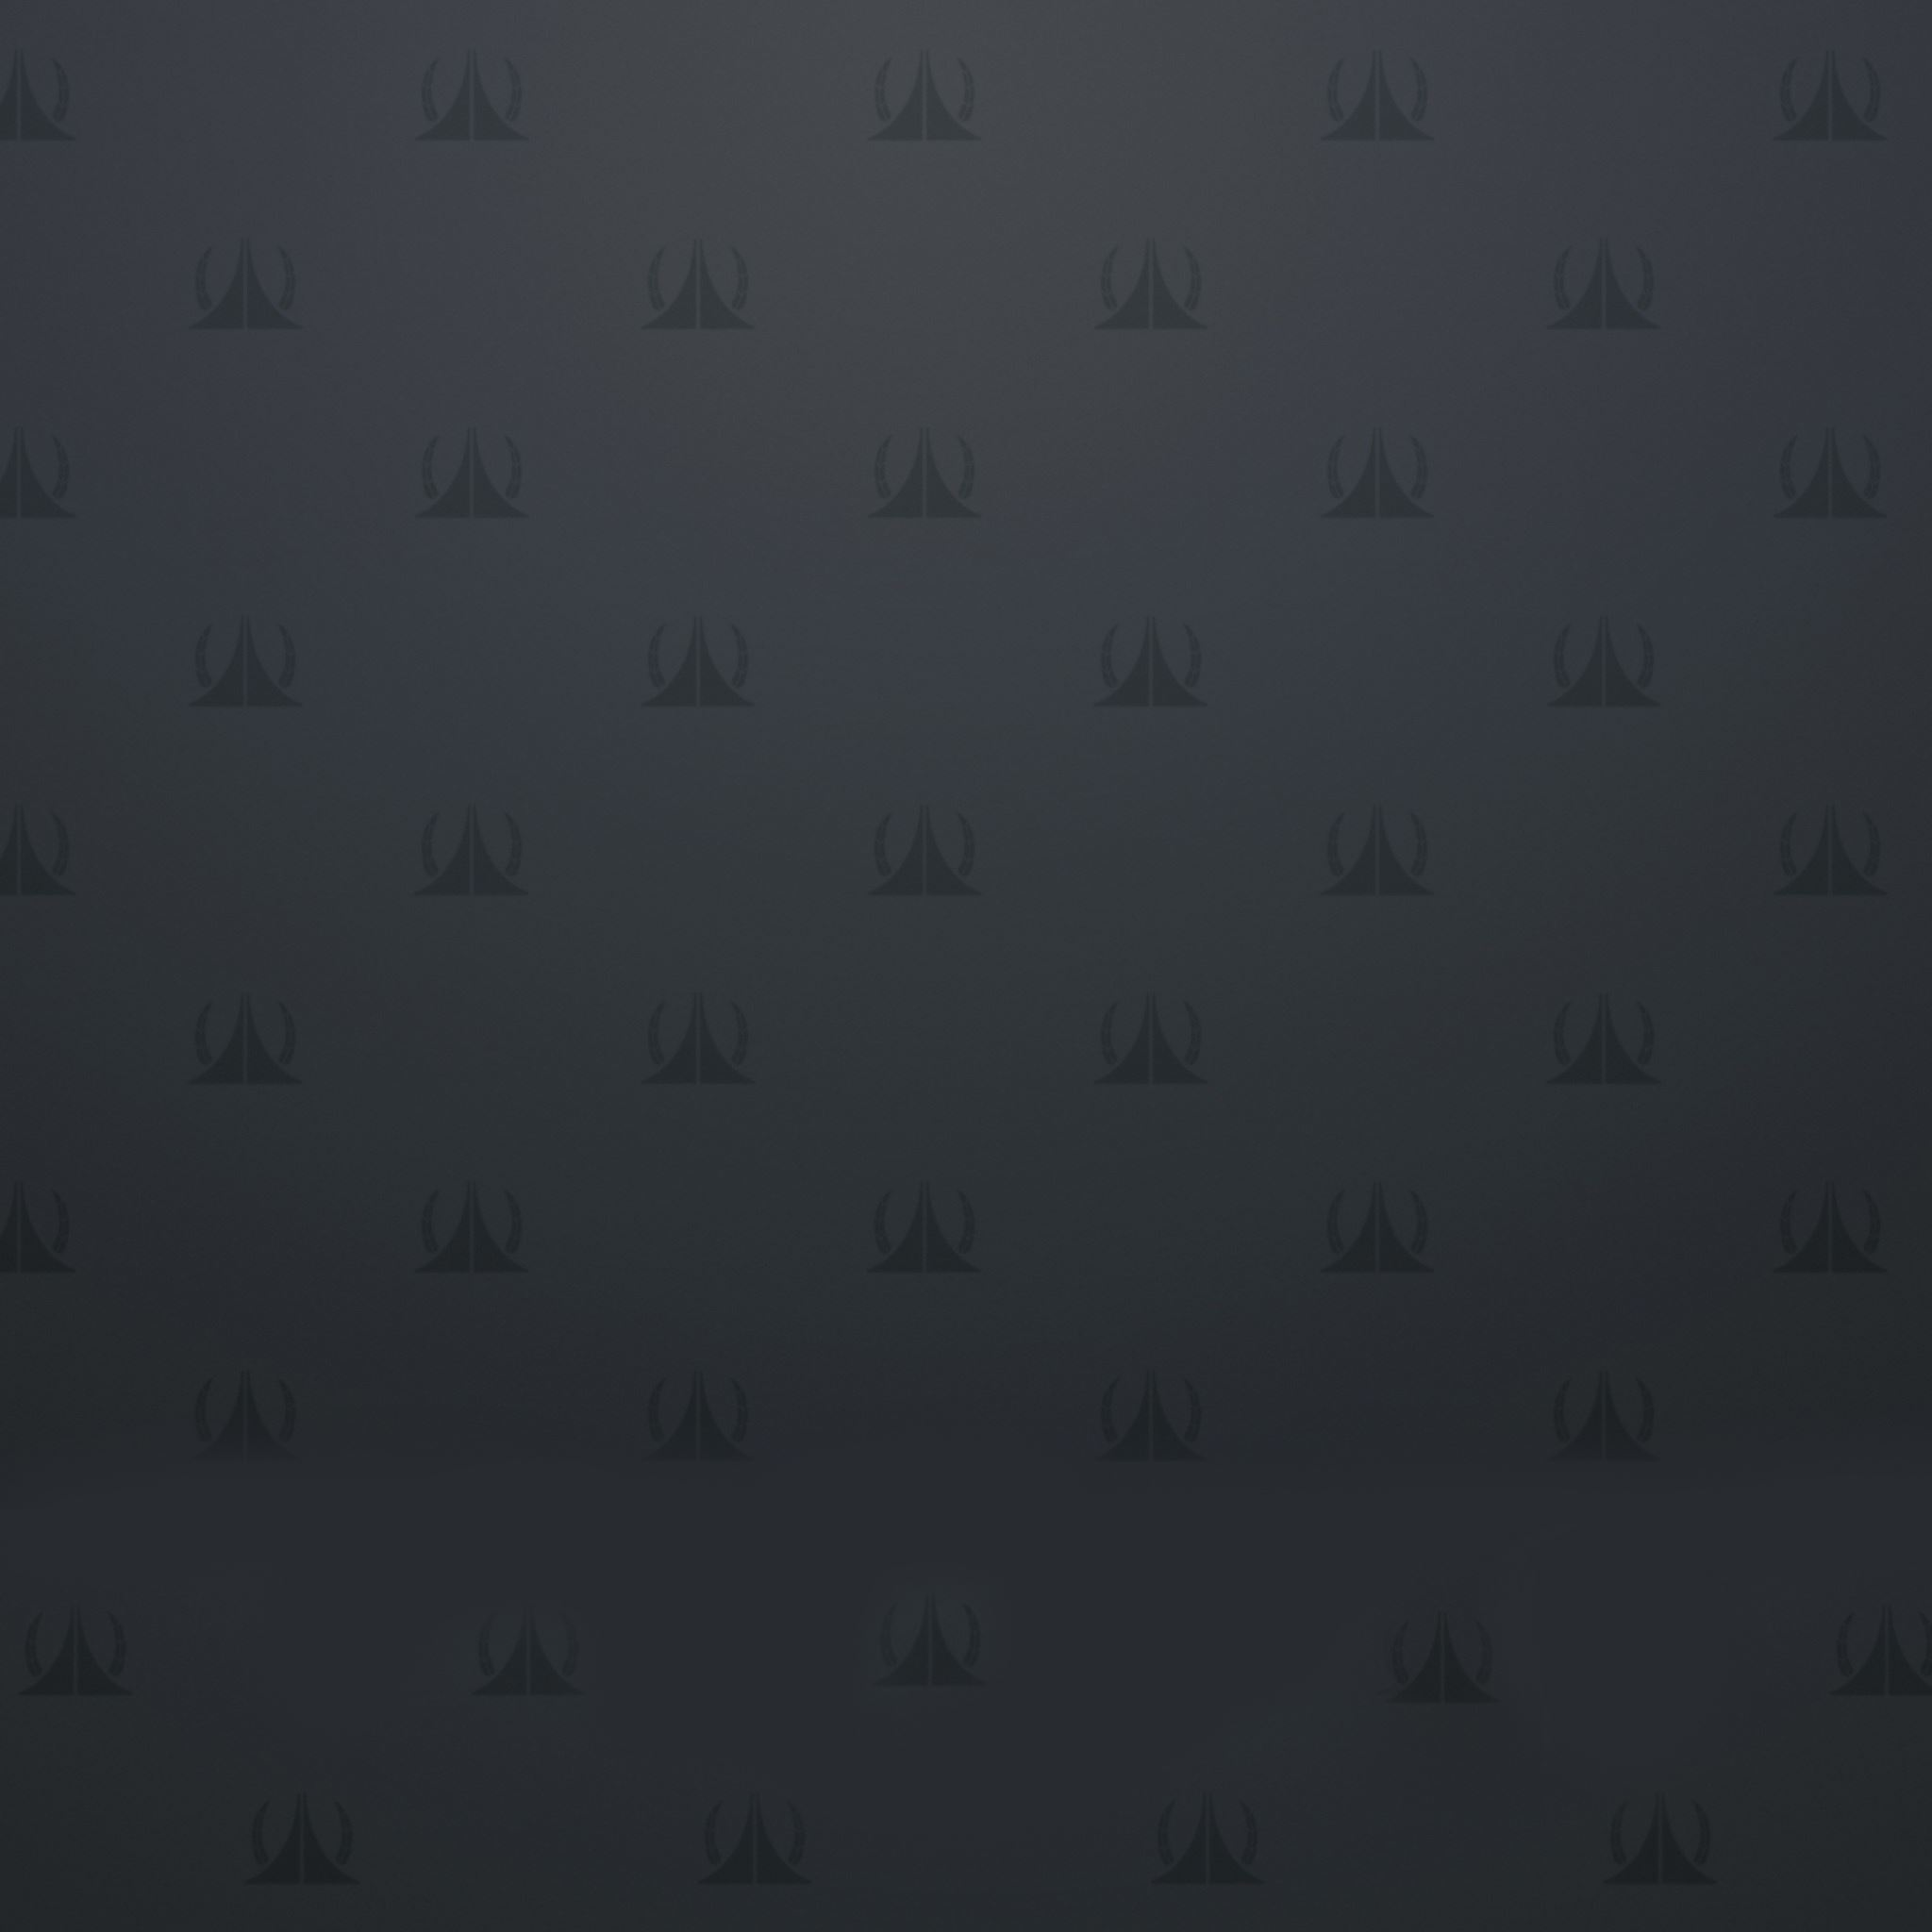 Pattern on the Gray Background iPad Air wallpaper